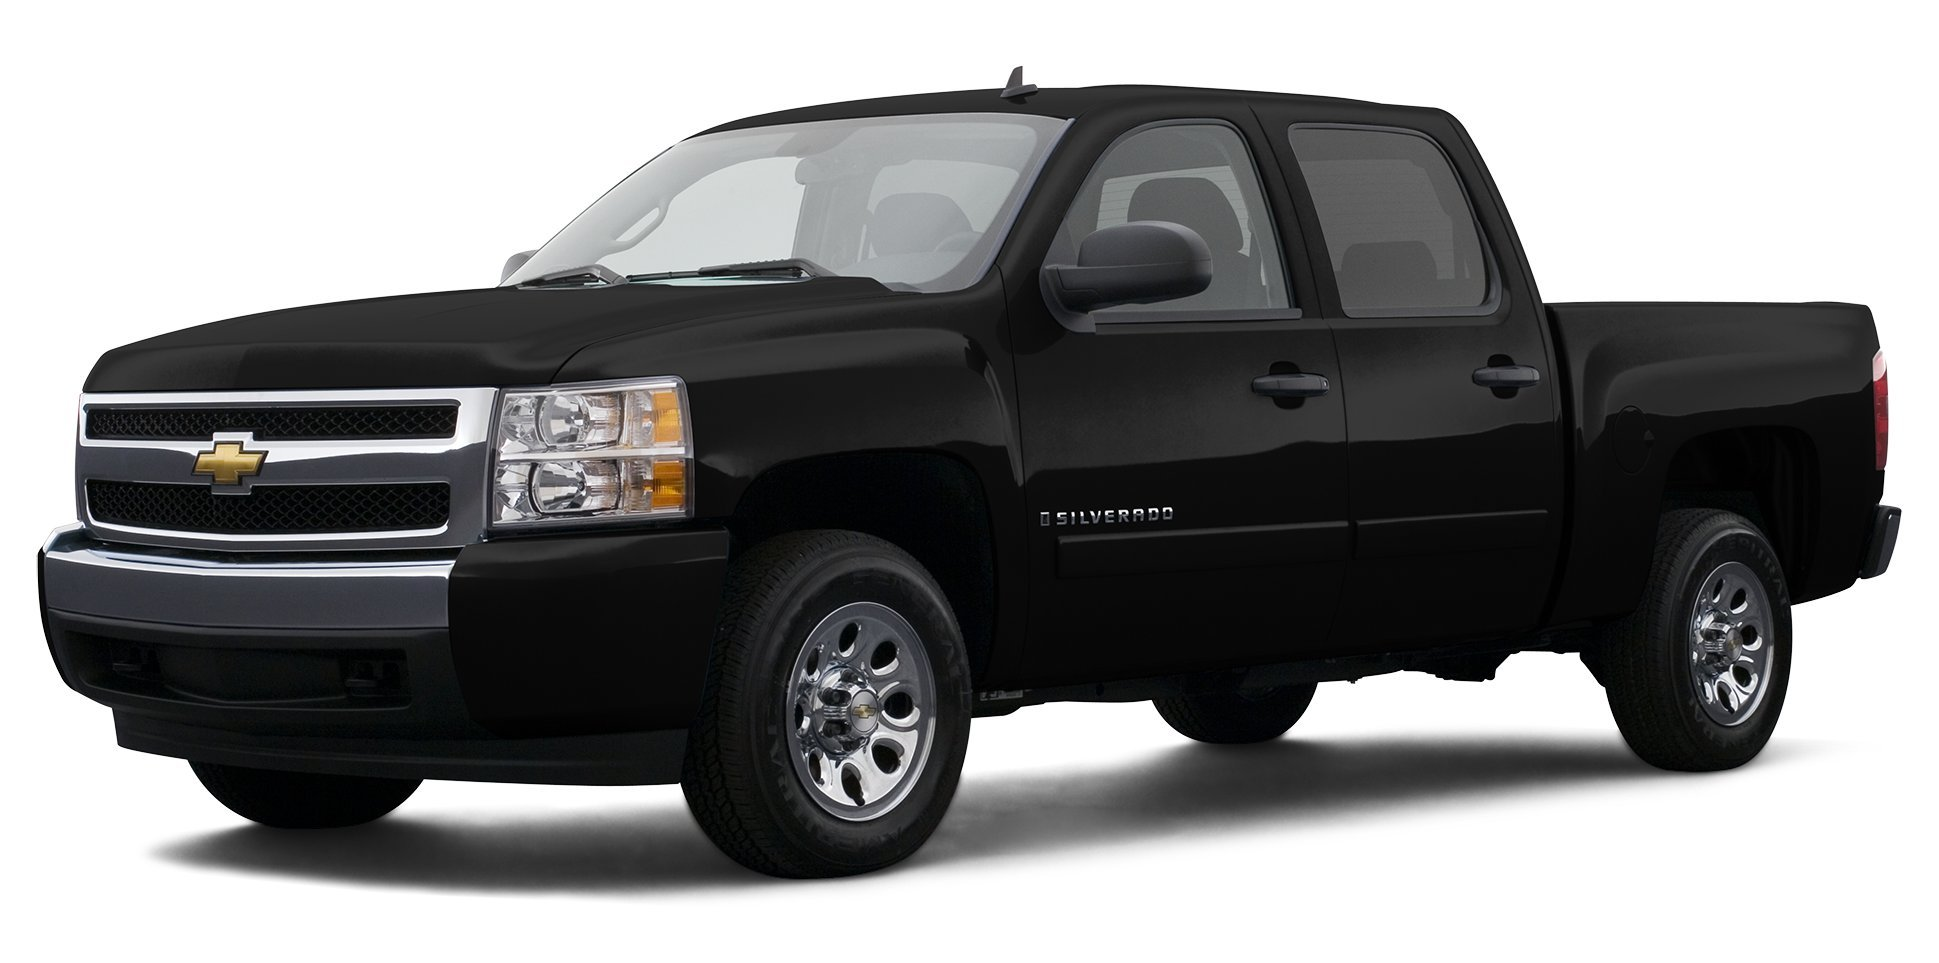 2007 Chevrolet Silverado 1500 Reviews Images And Specs Leaking High Pressure Line On My 1998 Z71 Power Steeringnew Pump Ls 2 Wheel Drive Crew Cab 1435